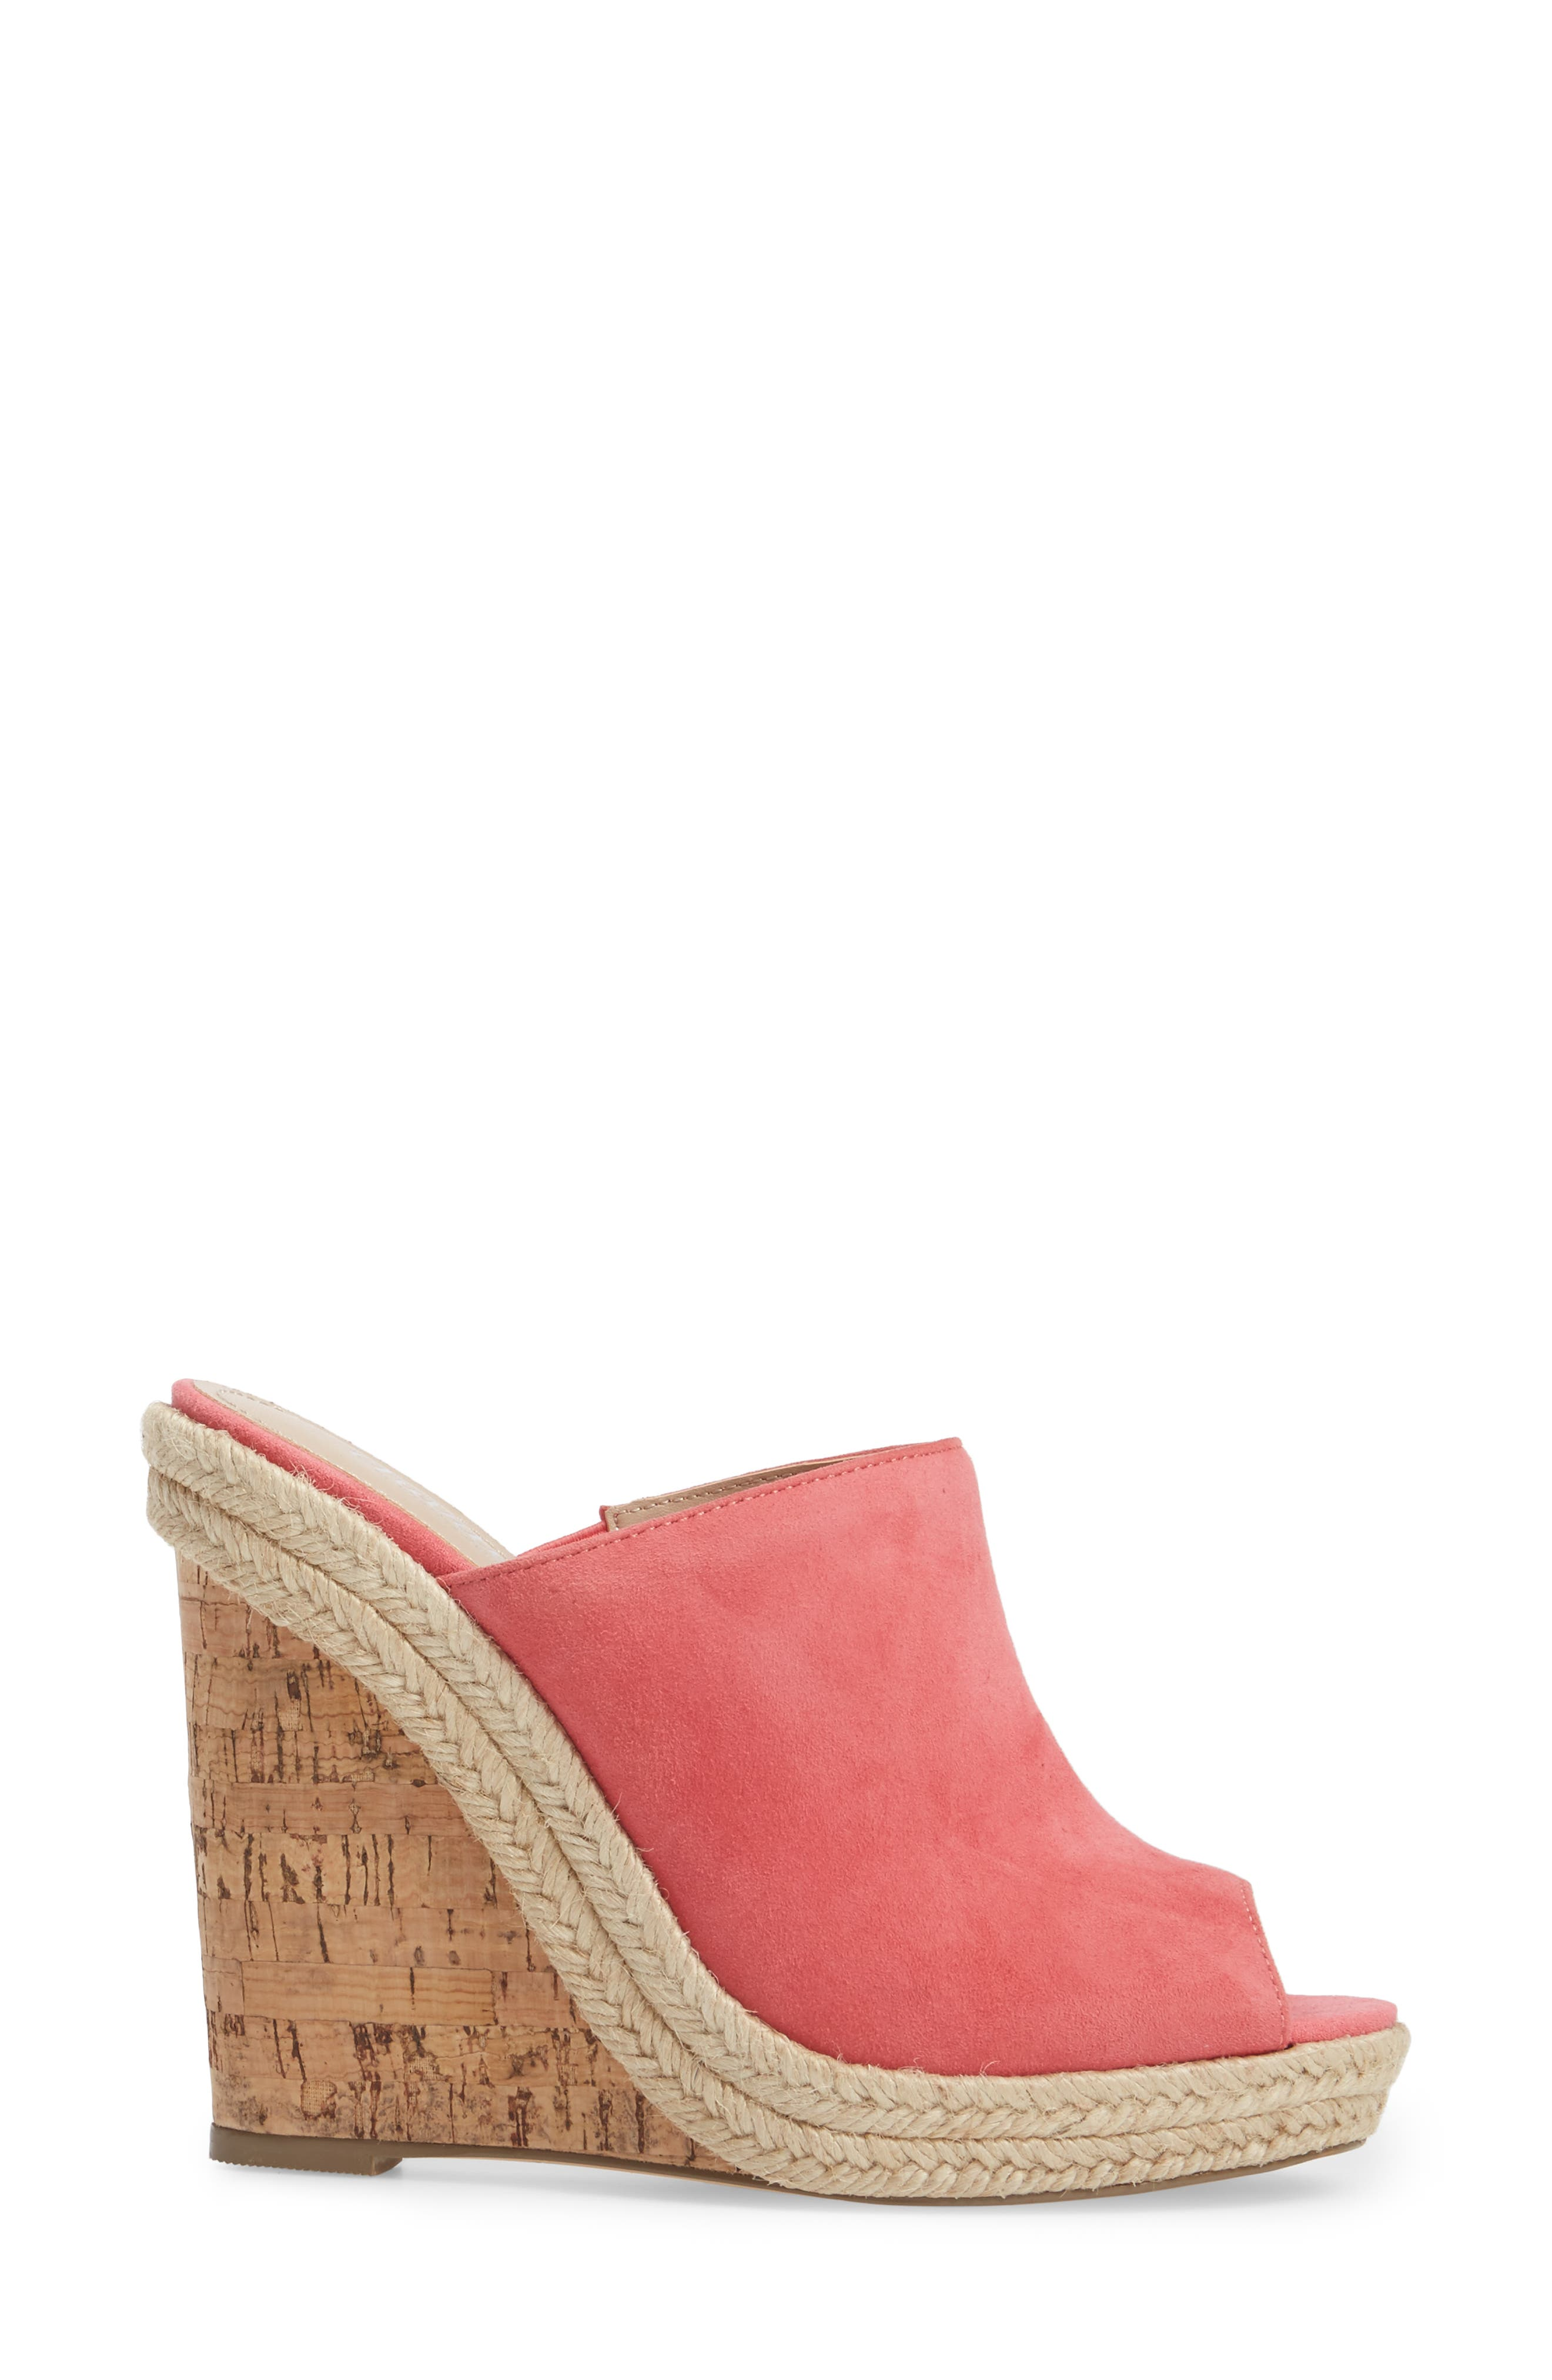 Balen Wedge,                             Alternate thumbnail 7, color,                             Coral Suede